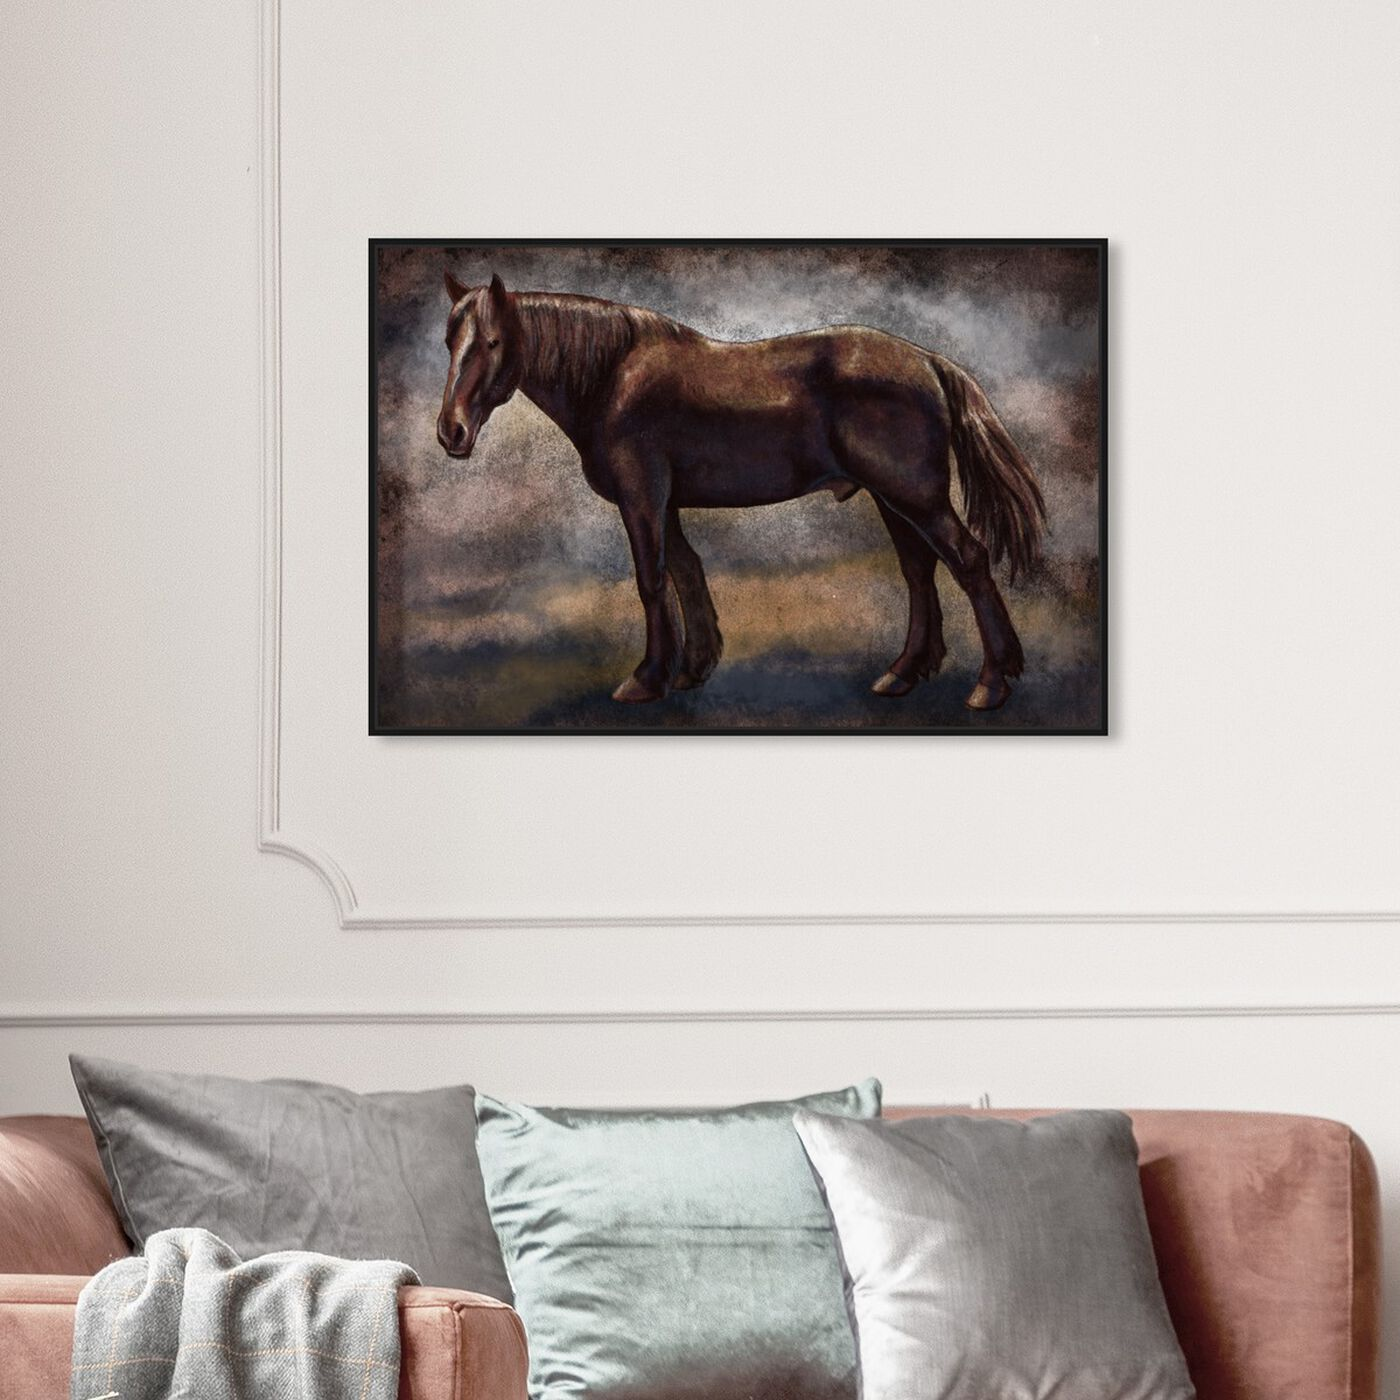 Hanging view of Brown Horse featuring animals and farm animals art.